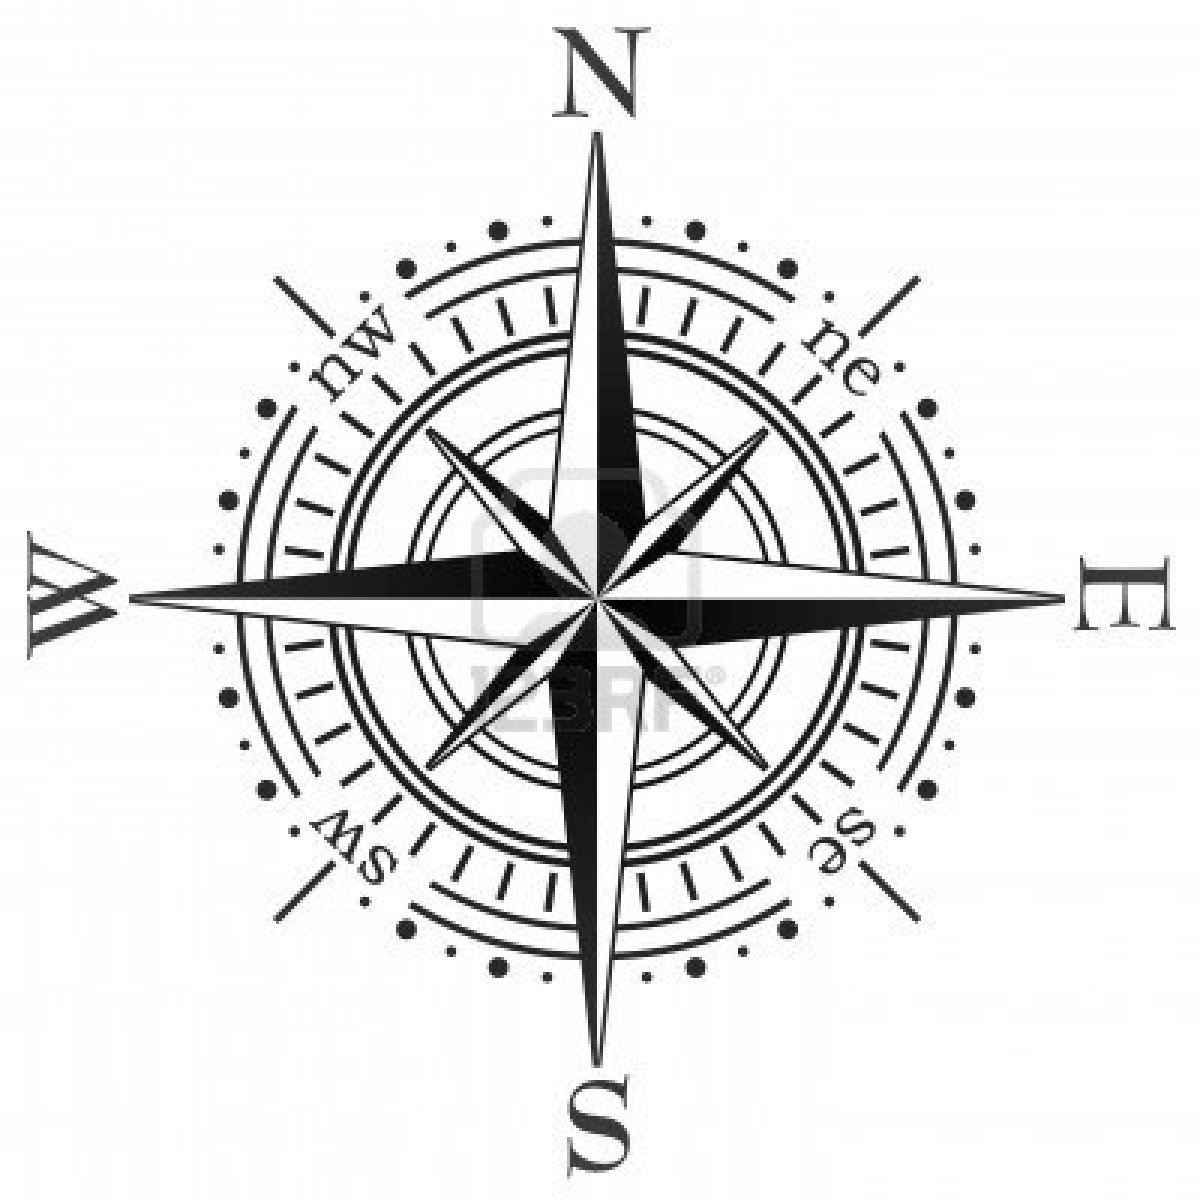 Drawn compass simple black Pinterest compass and Tattoo vector